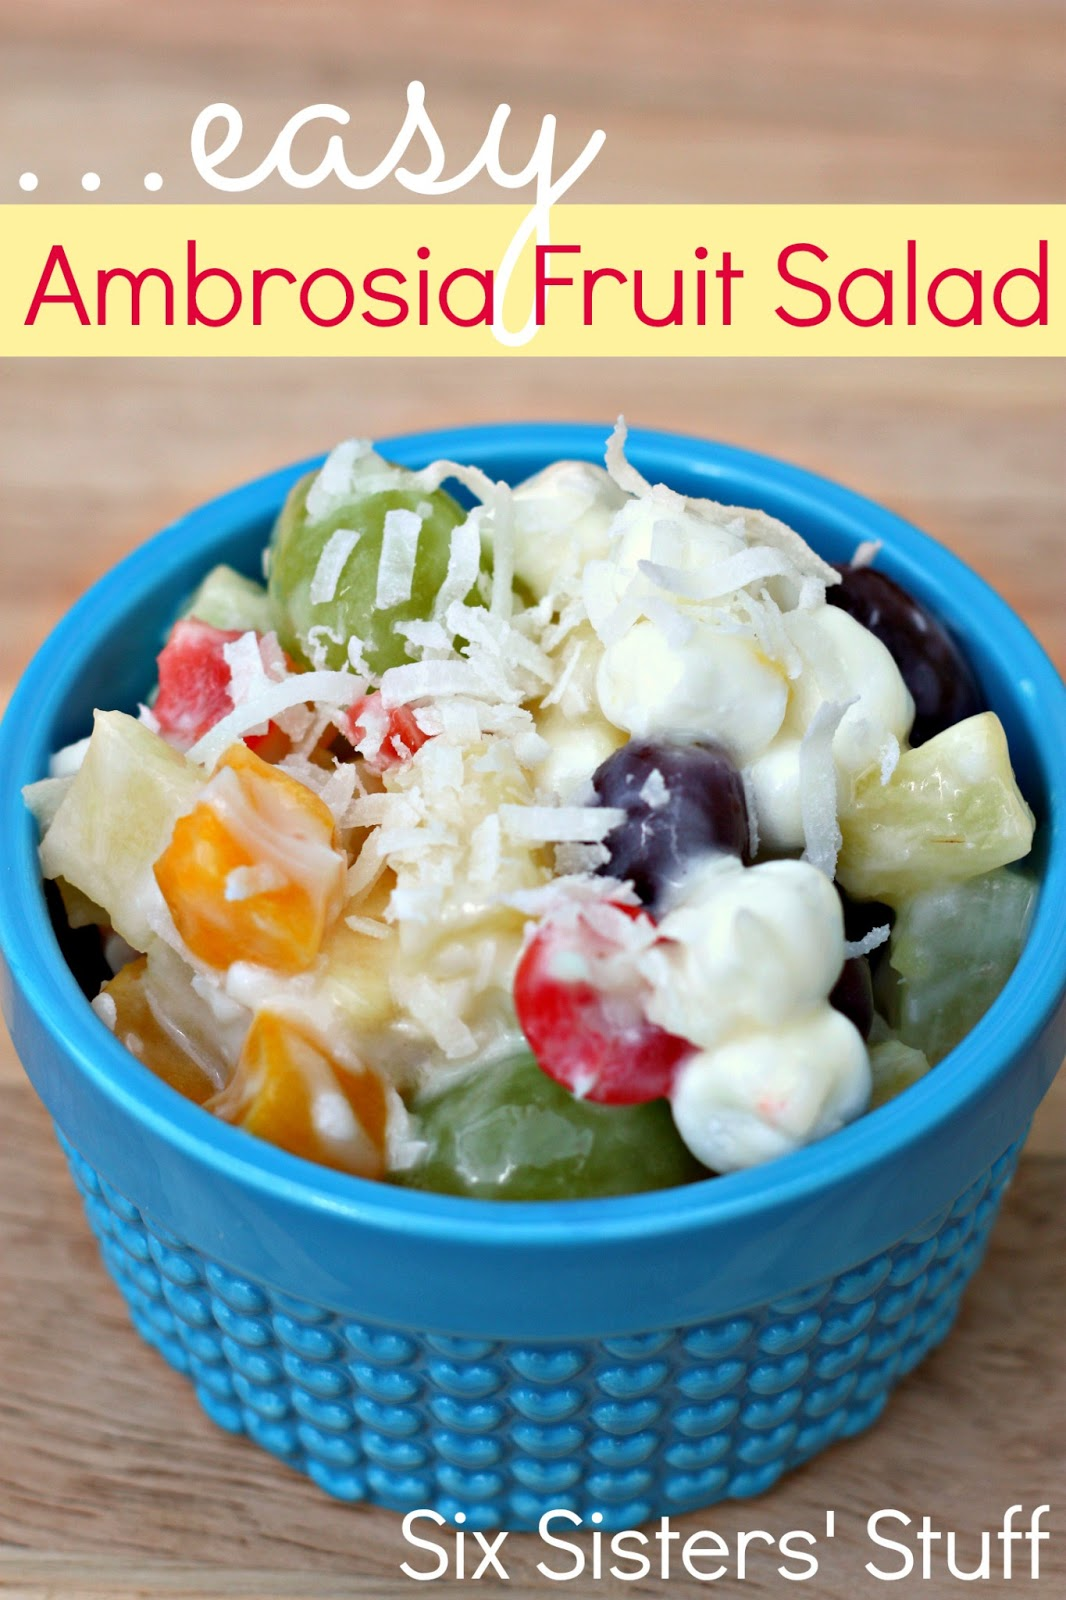 california state fruit healthy ambrosia fruit salad